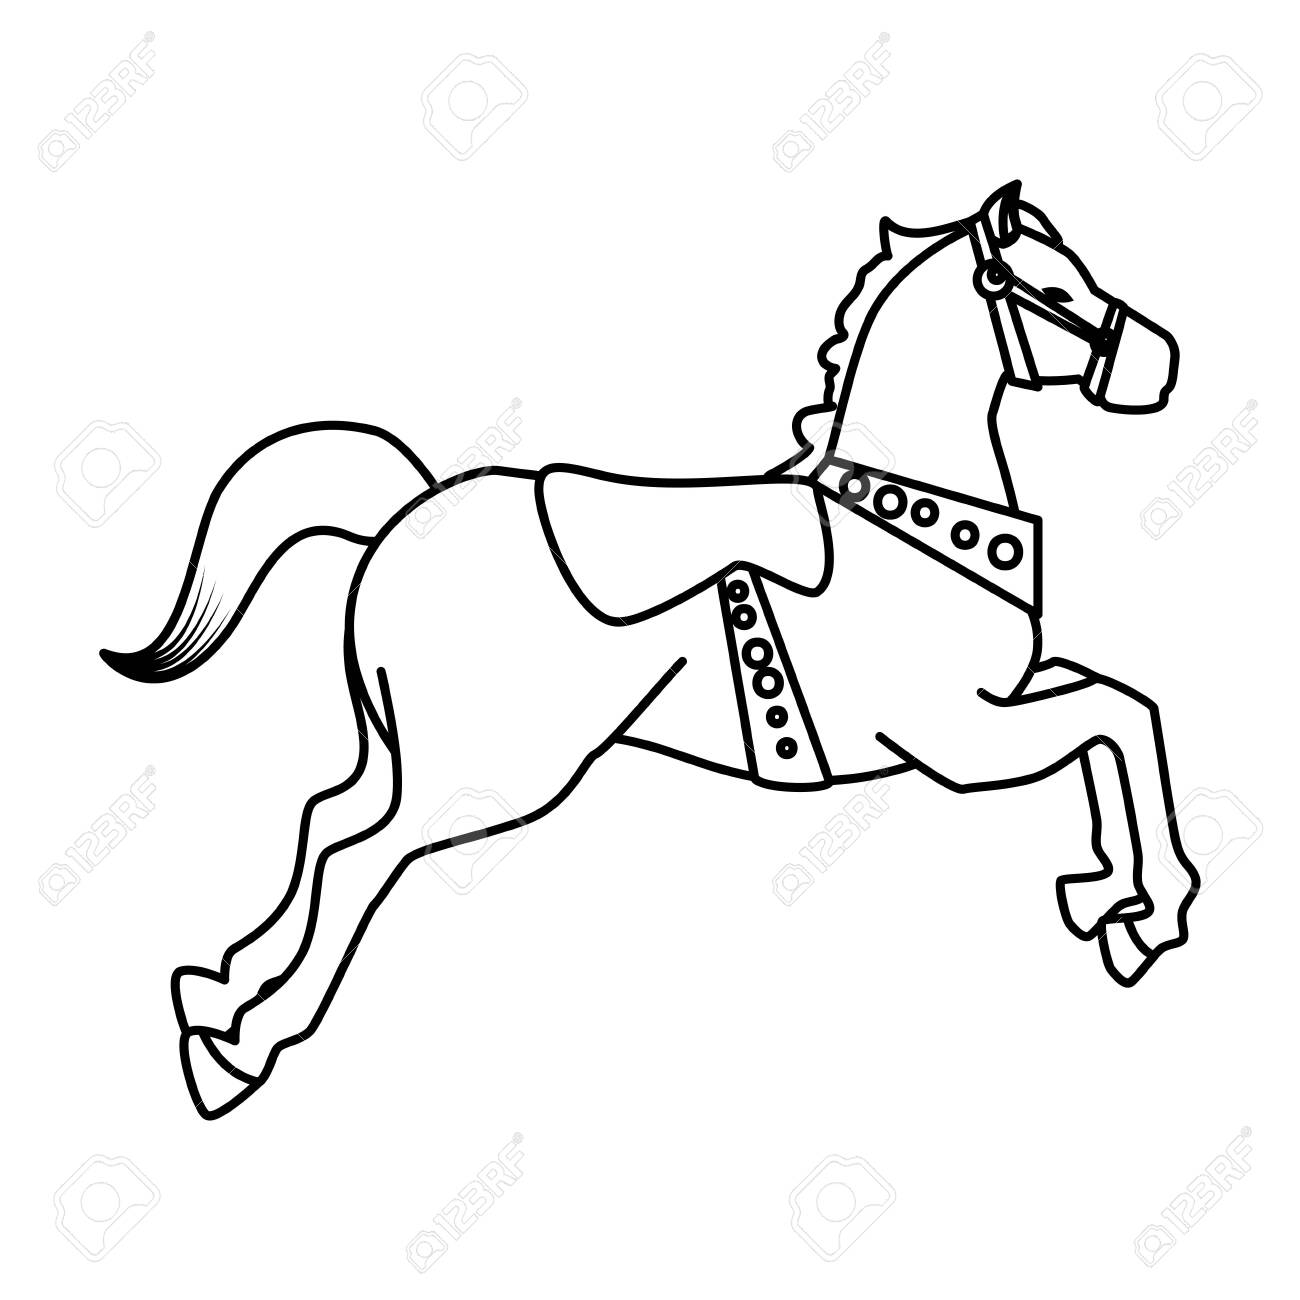 Carousel Horse Carnival Icon Vector Illustration Design Royalty Free Cliparts Vectors And Stock Illustration Image 125825850